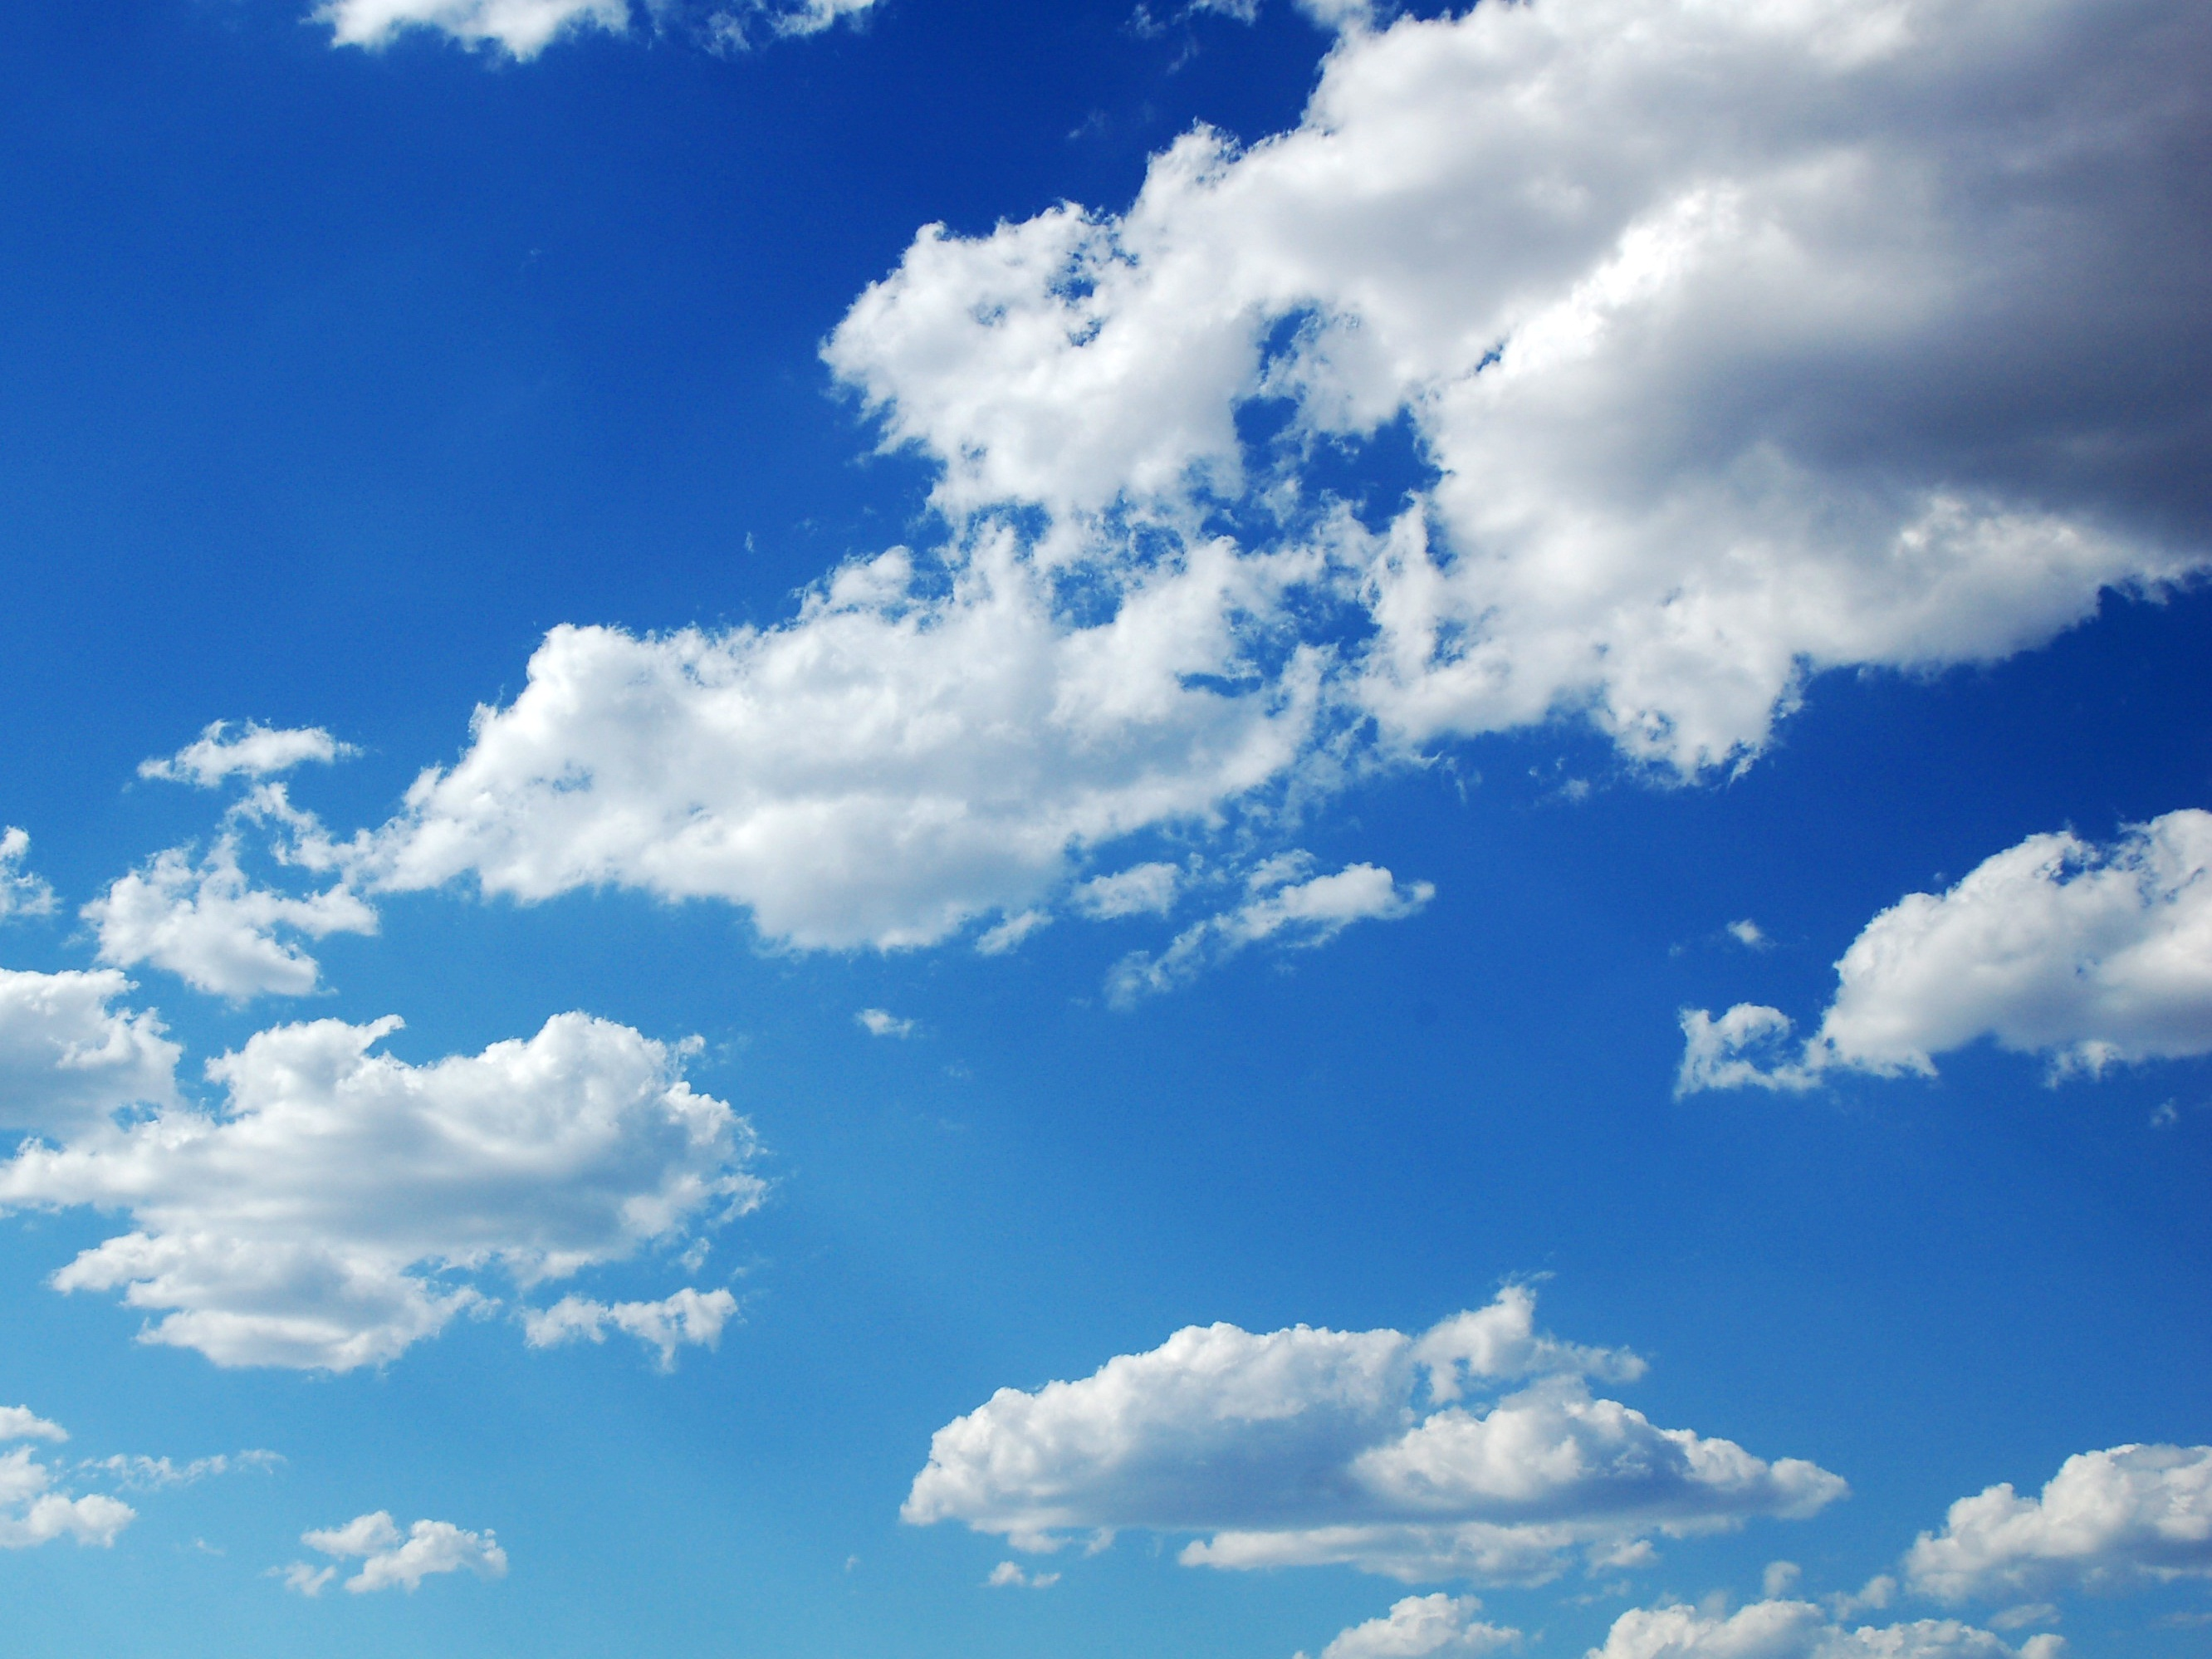 Clouds dreams meaning - Interpretation and Meaning